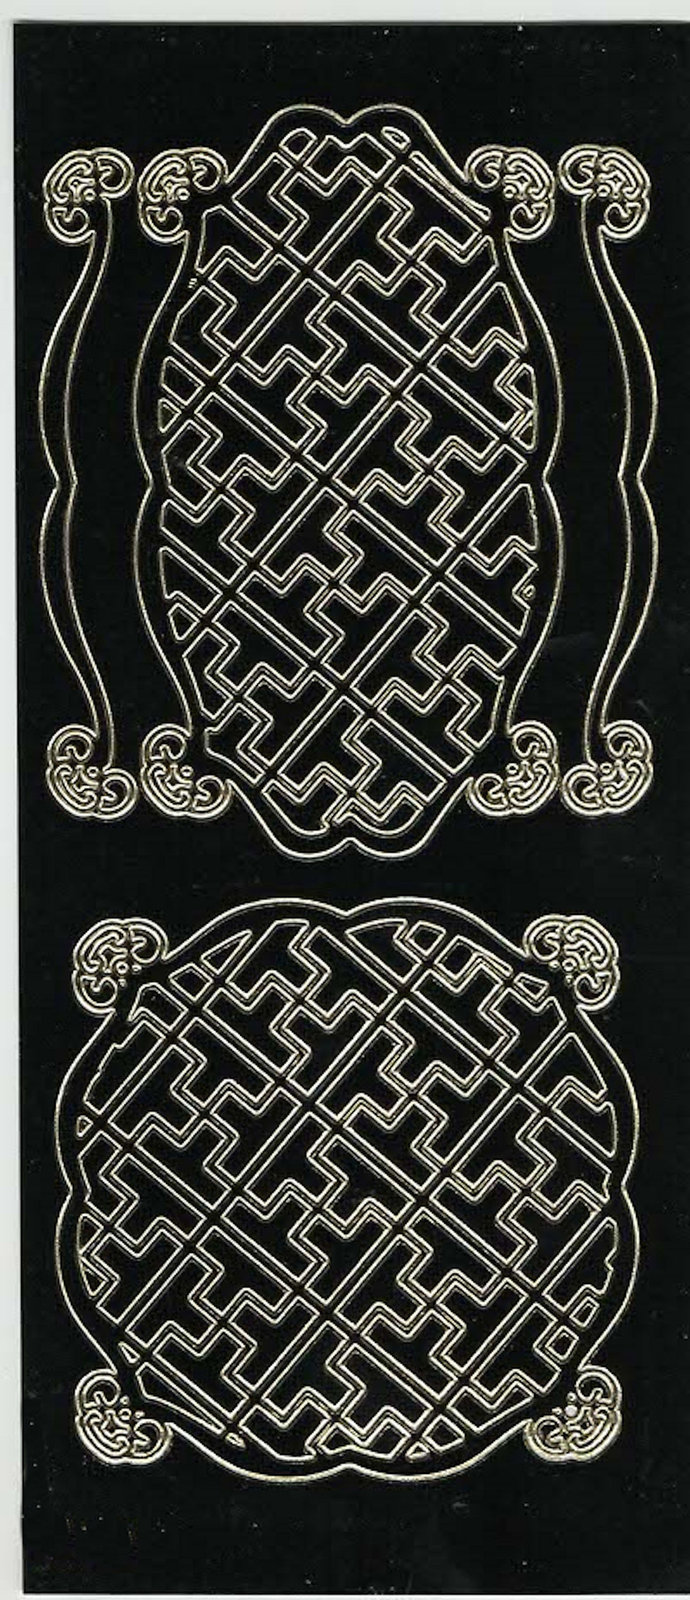 gold on black shaped patterns theme mixed sheet of peel off stickers  ideal card